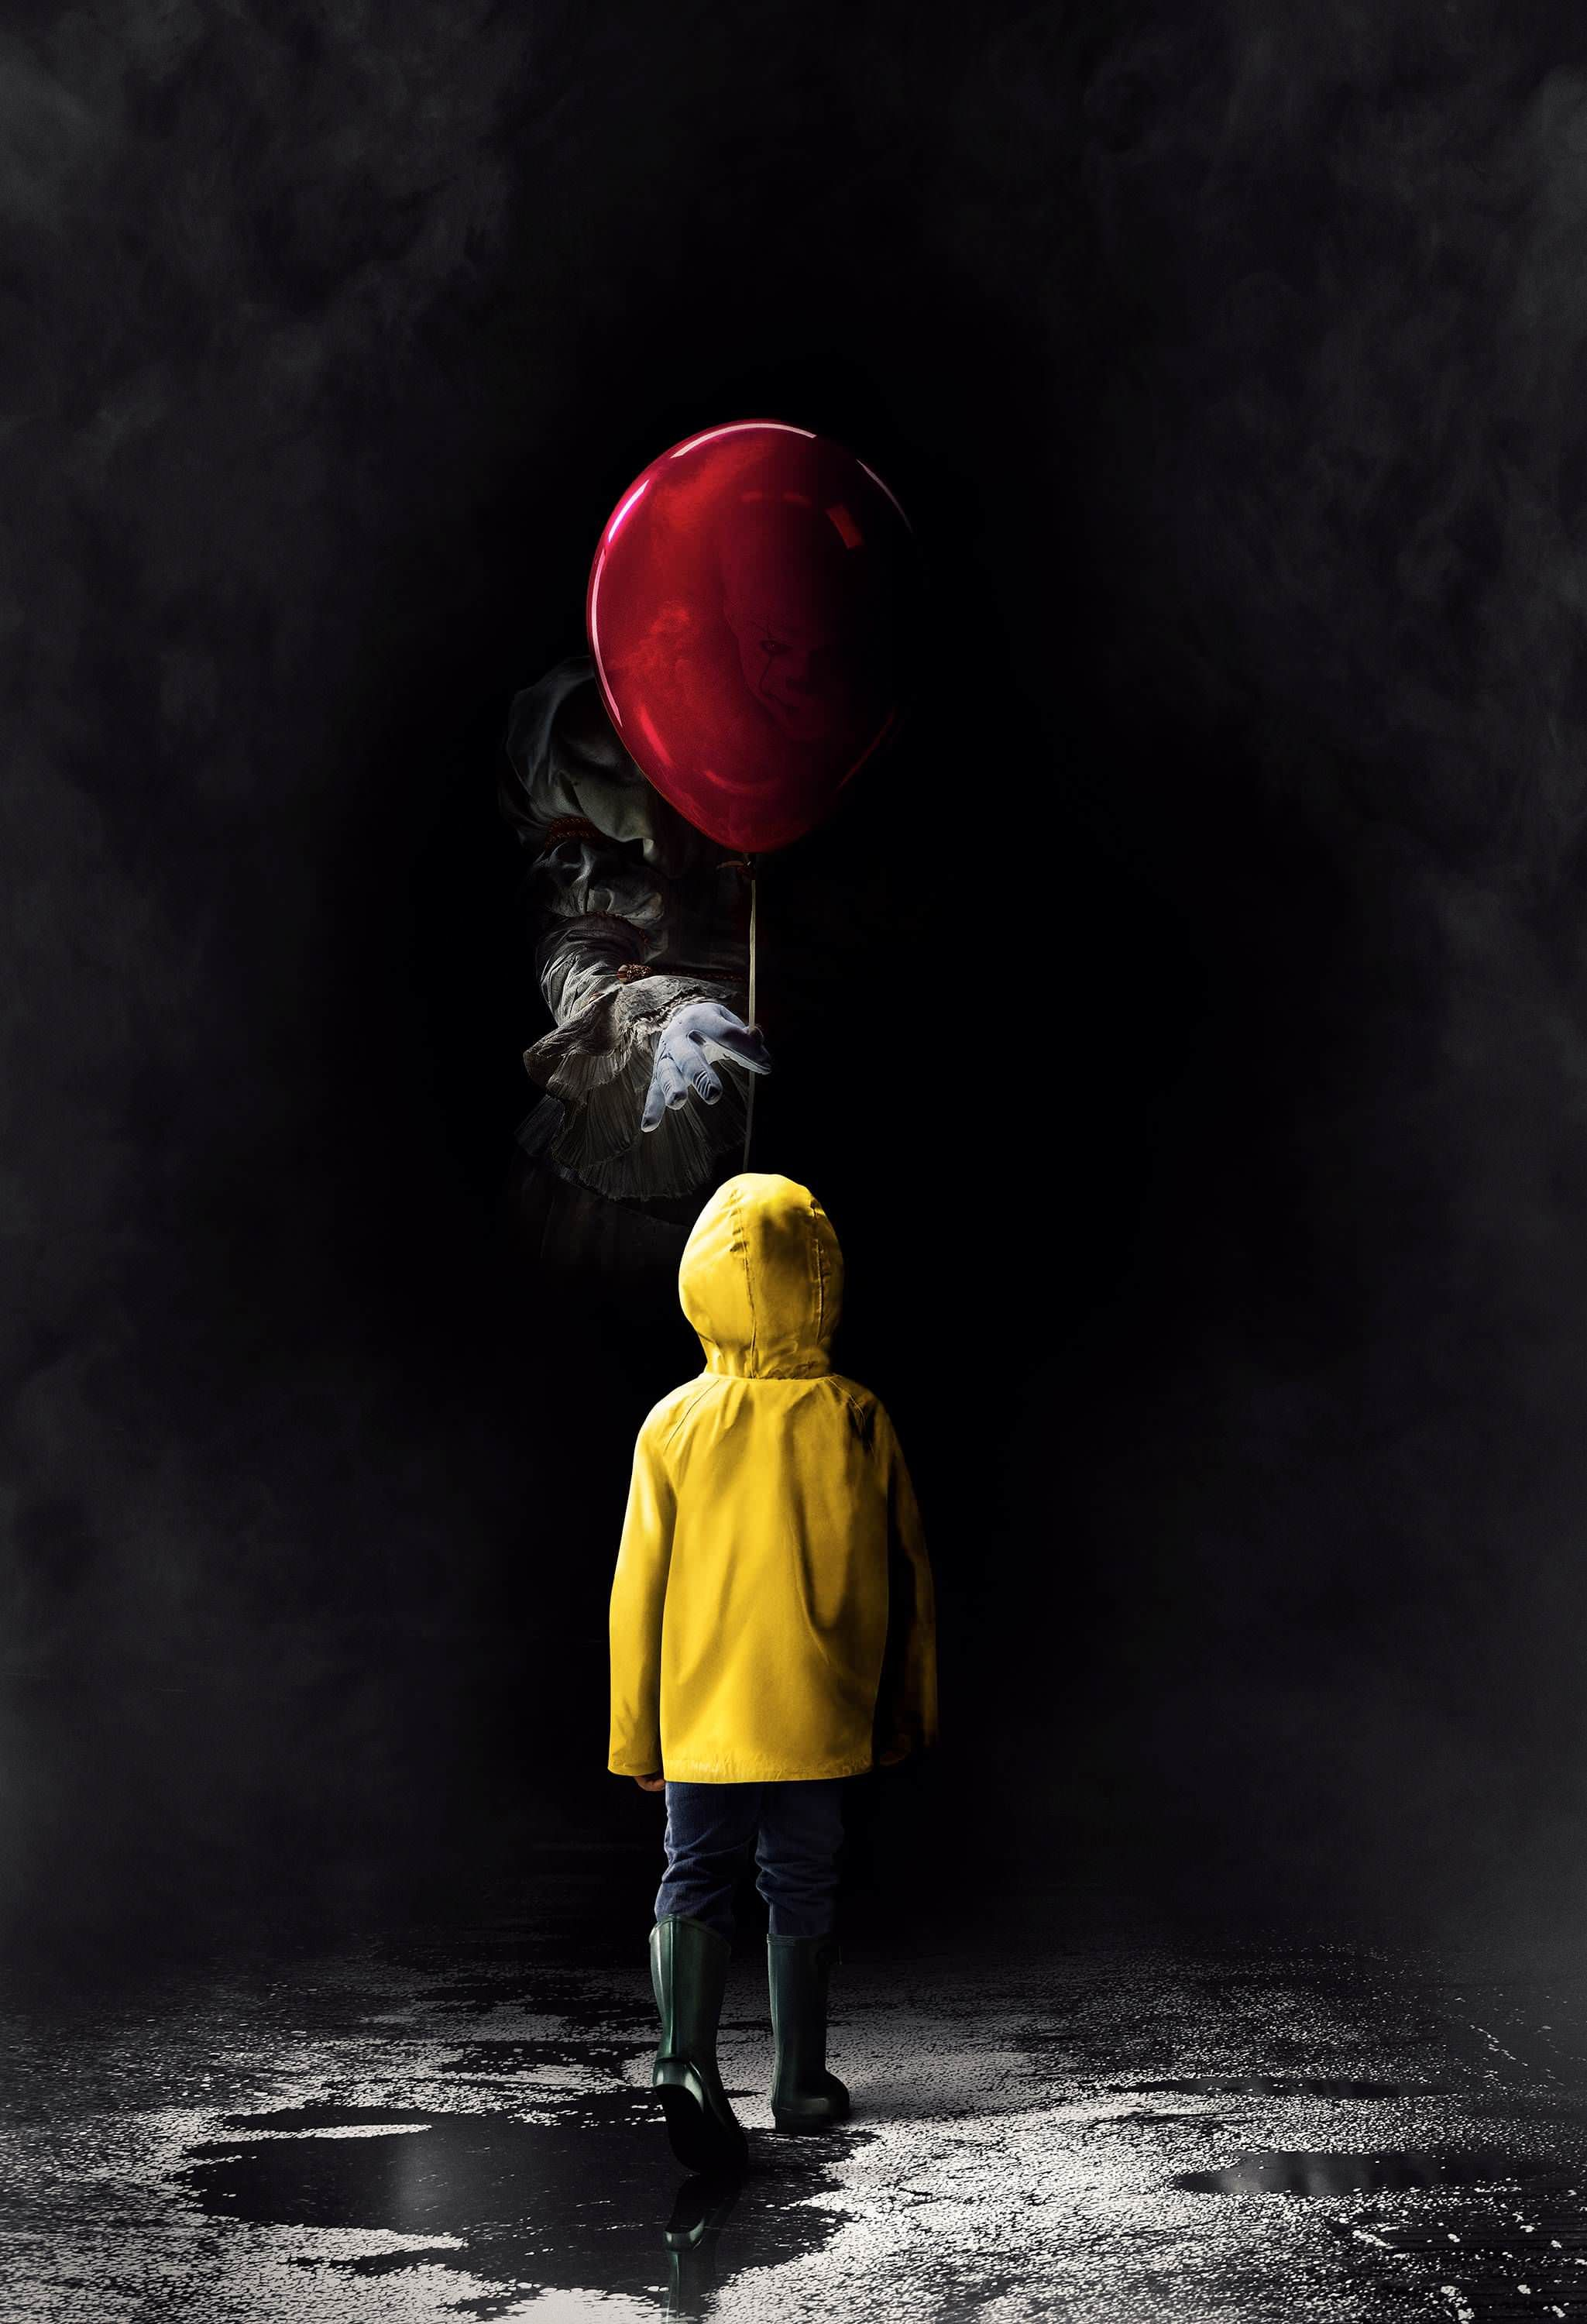 it (2017) hd wallpaper from gallsource | film & tv | pinterest